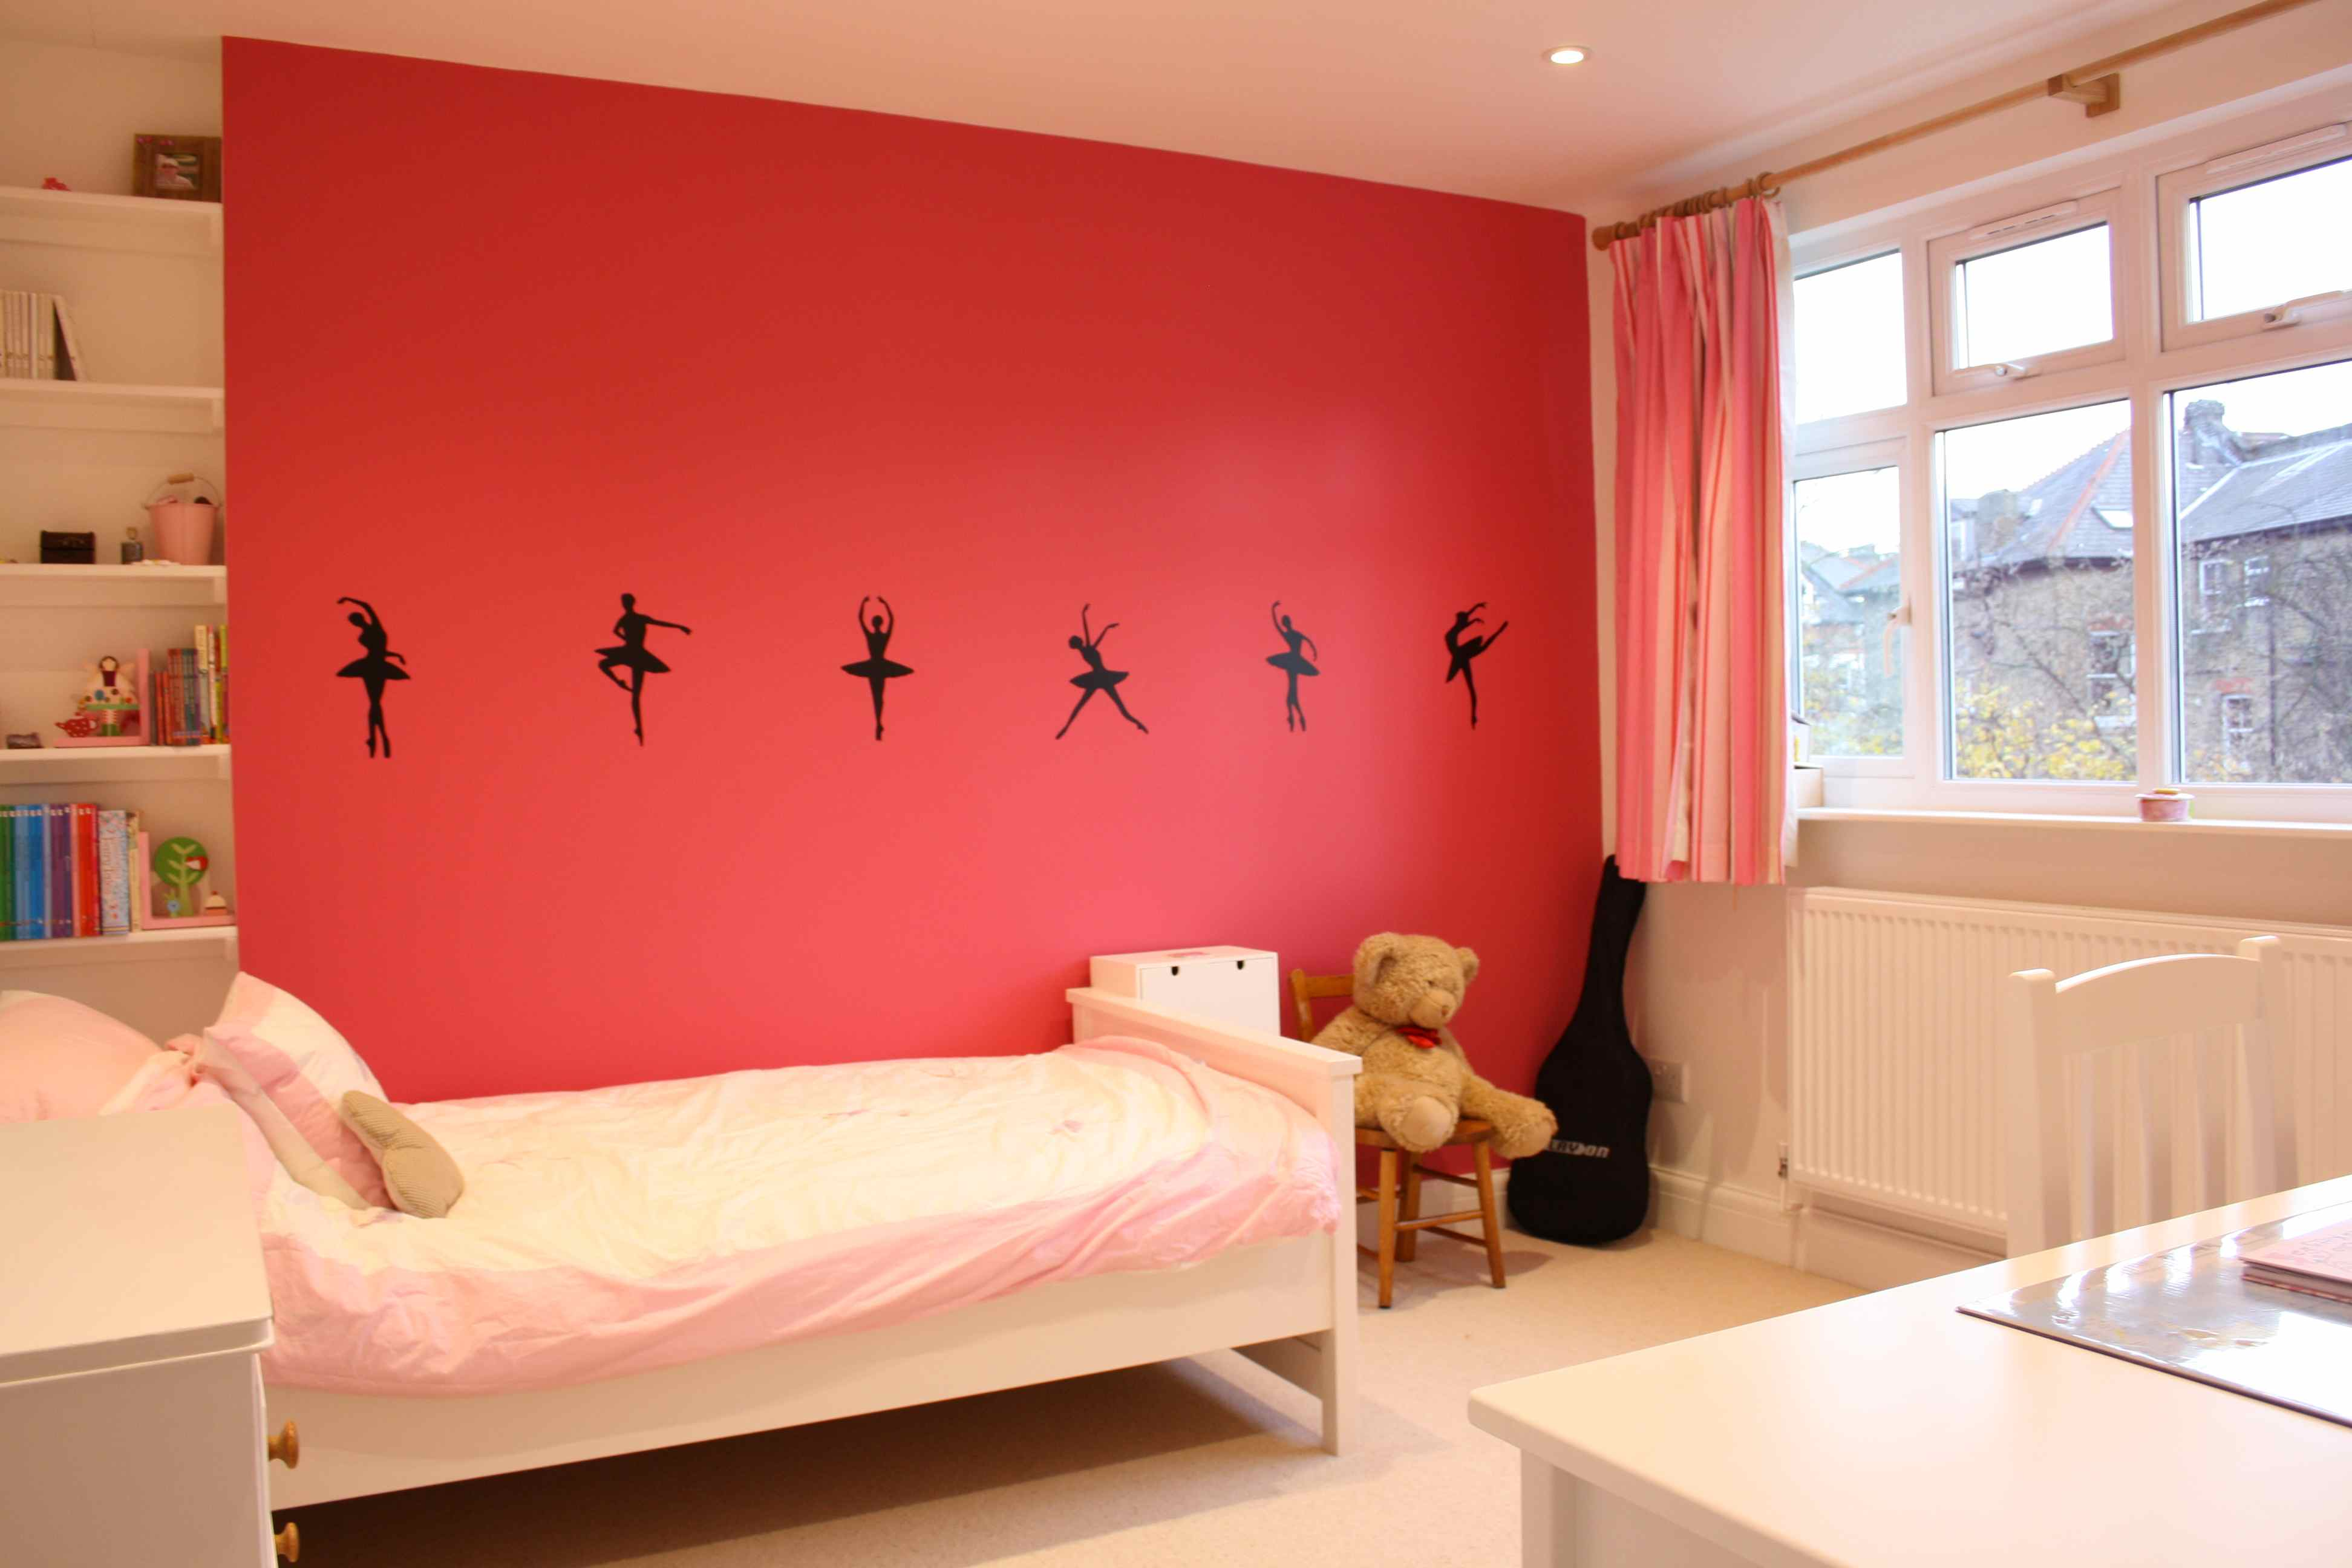 London Bedroom Wallpaper A Round Up Of Our Top 5 London Loft Conversions